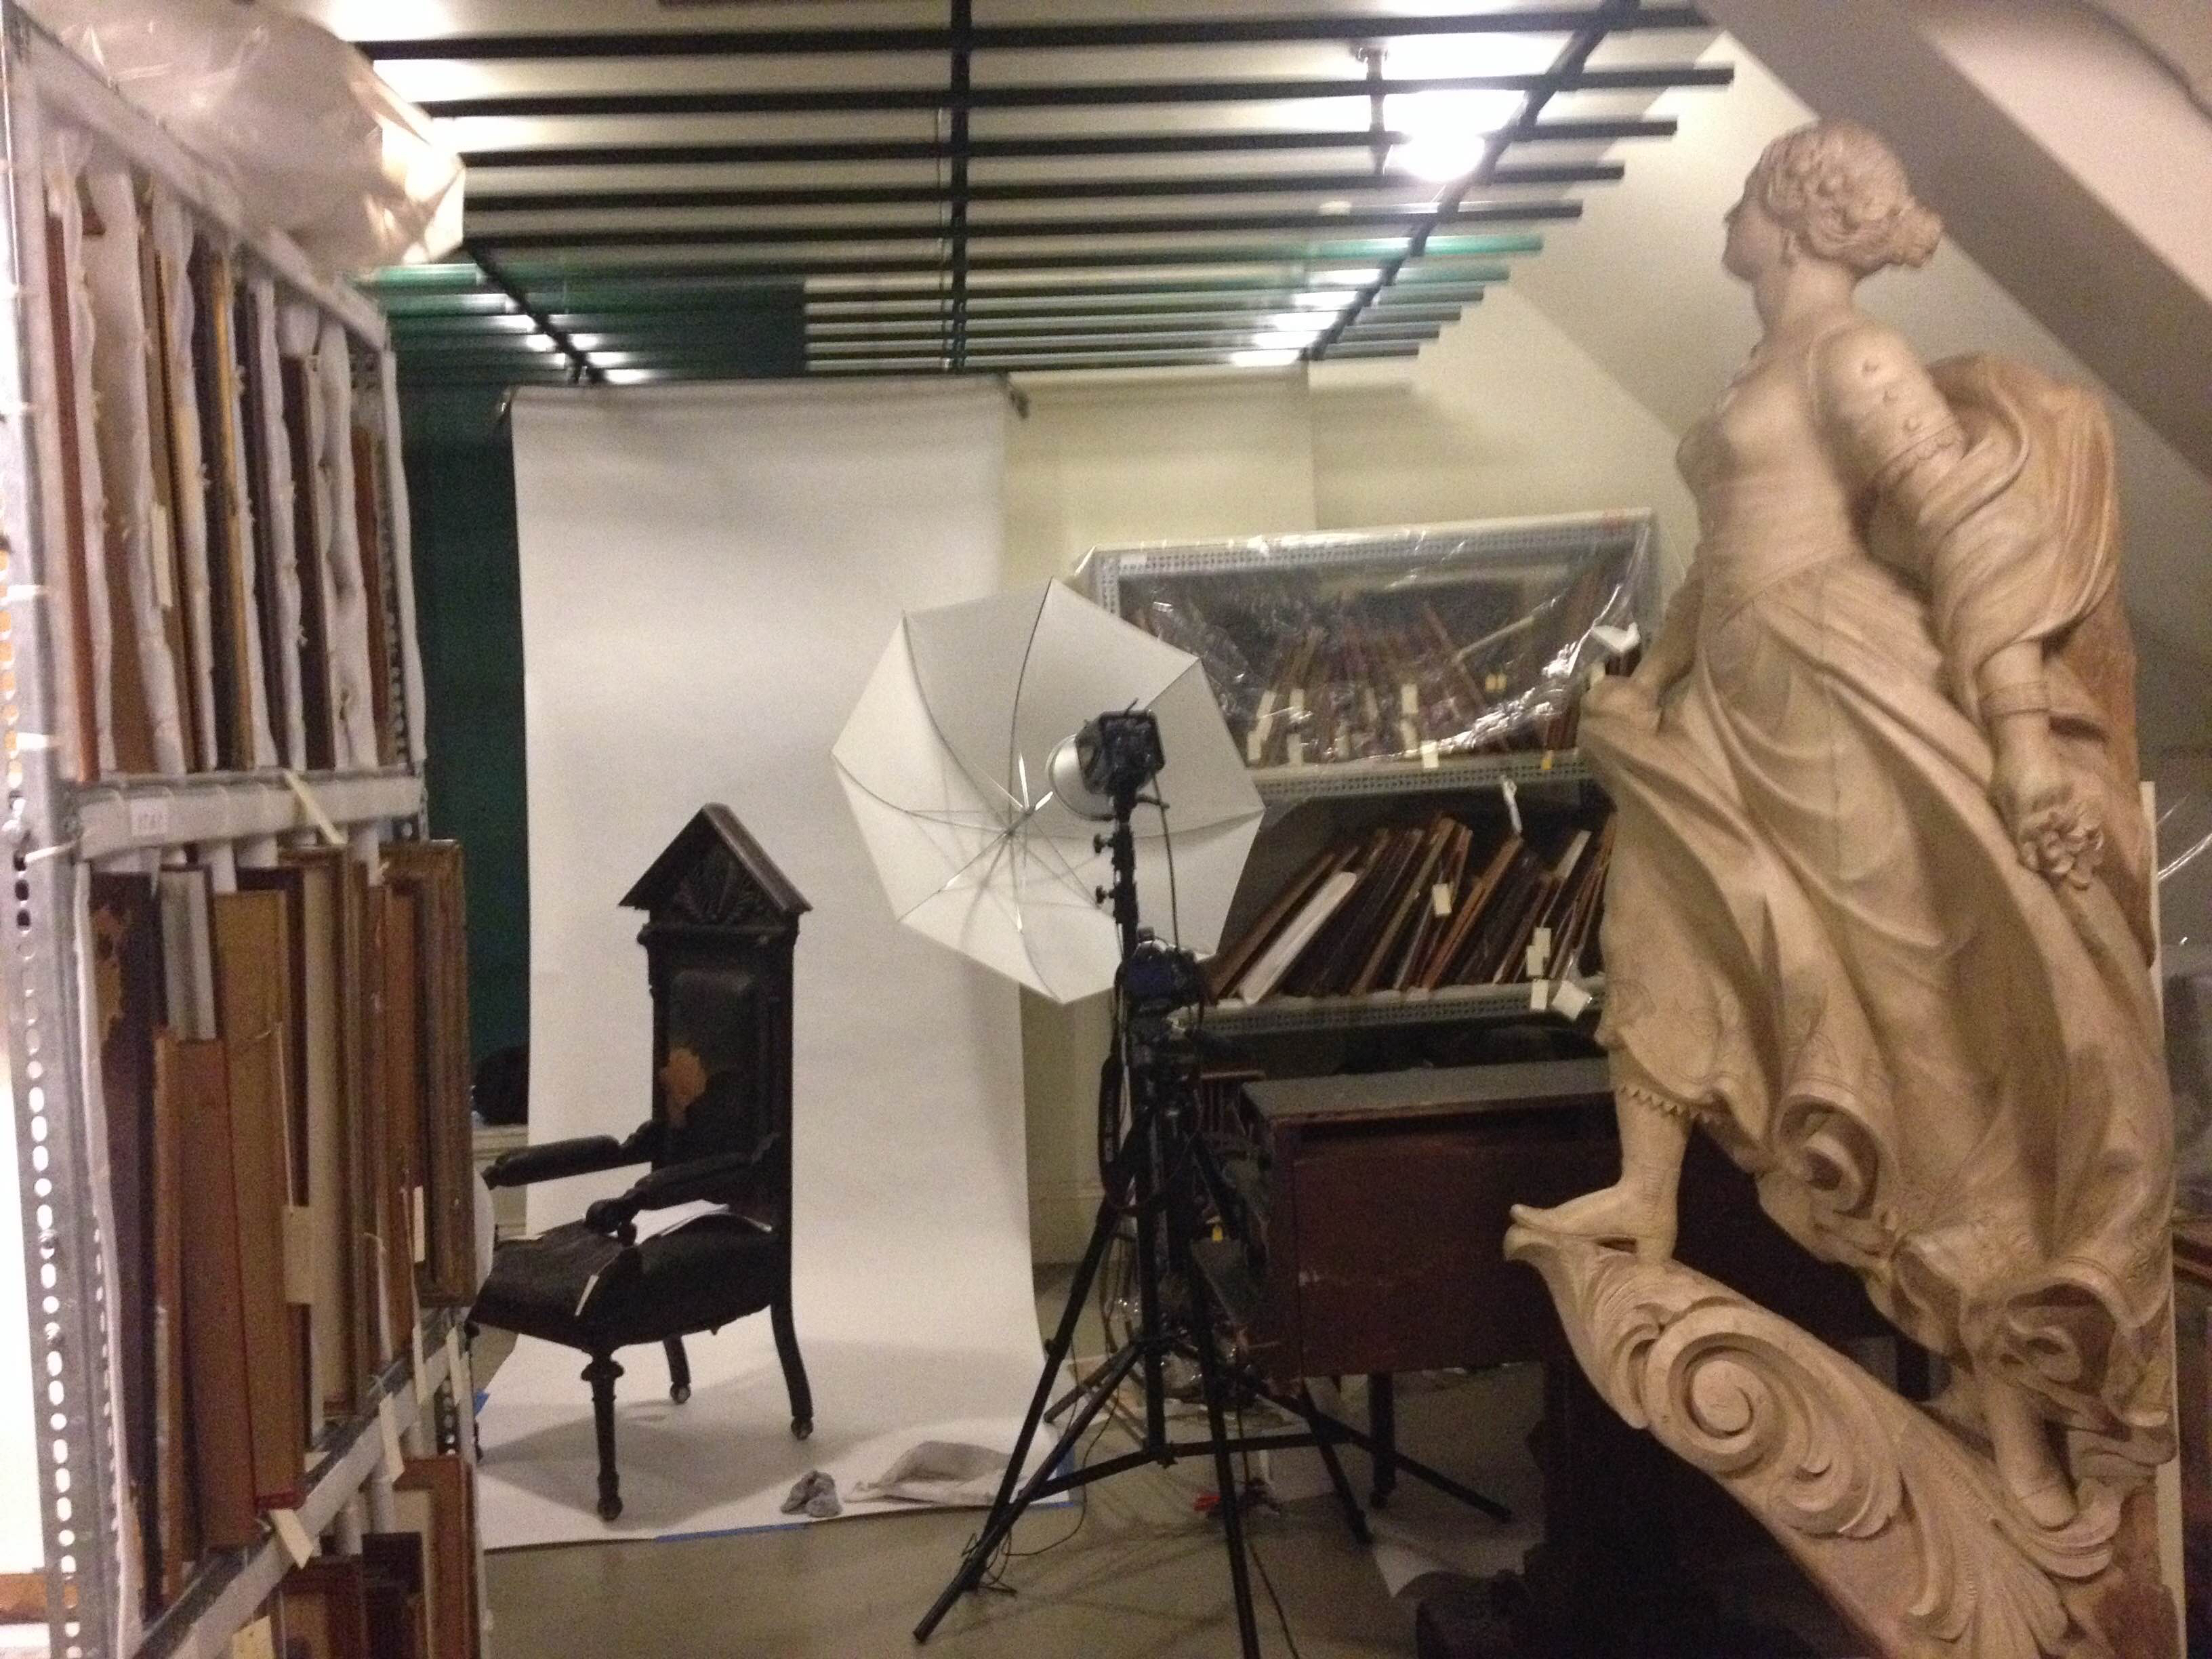 Working in collaboration with the collection's manager, we set up a tight but workable space for shooting at the Bostonian Society